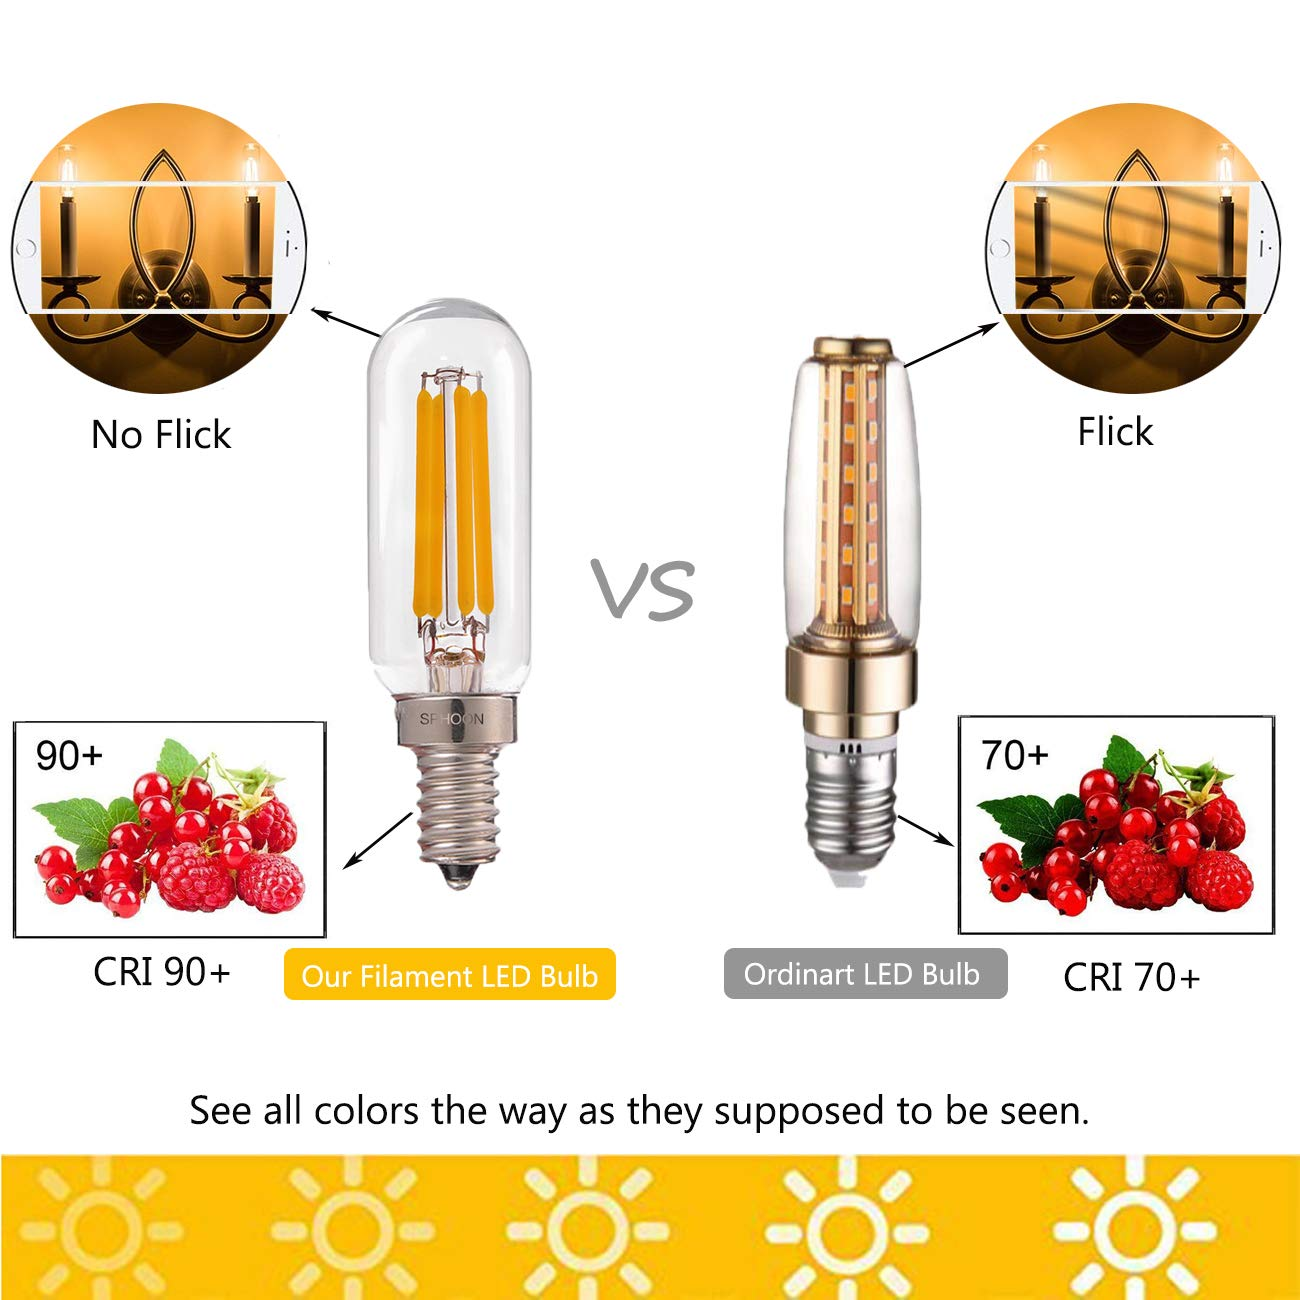 T25 4w Tubular Led Bulb Edison Filament Pendant Lighting 120v A C Lamp Flicker From Votive Candle Type 1 Cob Schematic Vintage E12 Candelabra Base Light 40w Incandescent Replacements Warm White 2700k